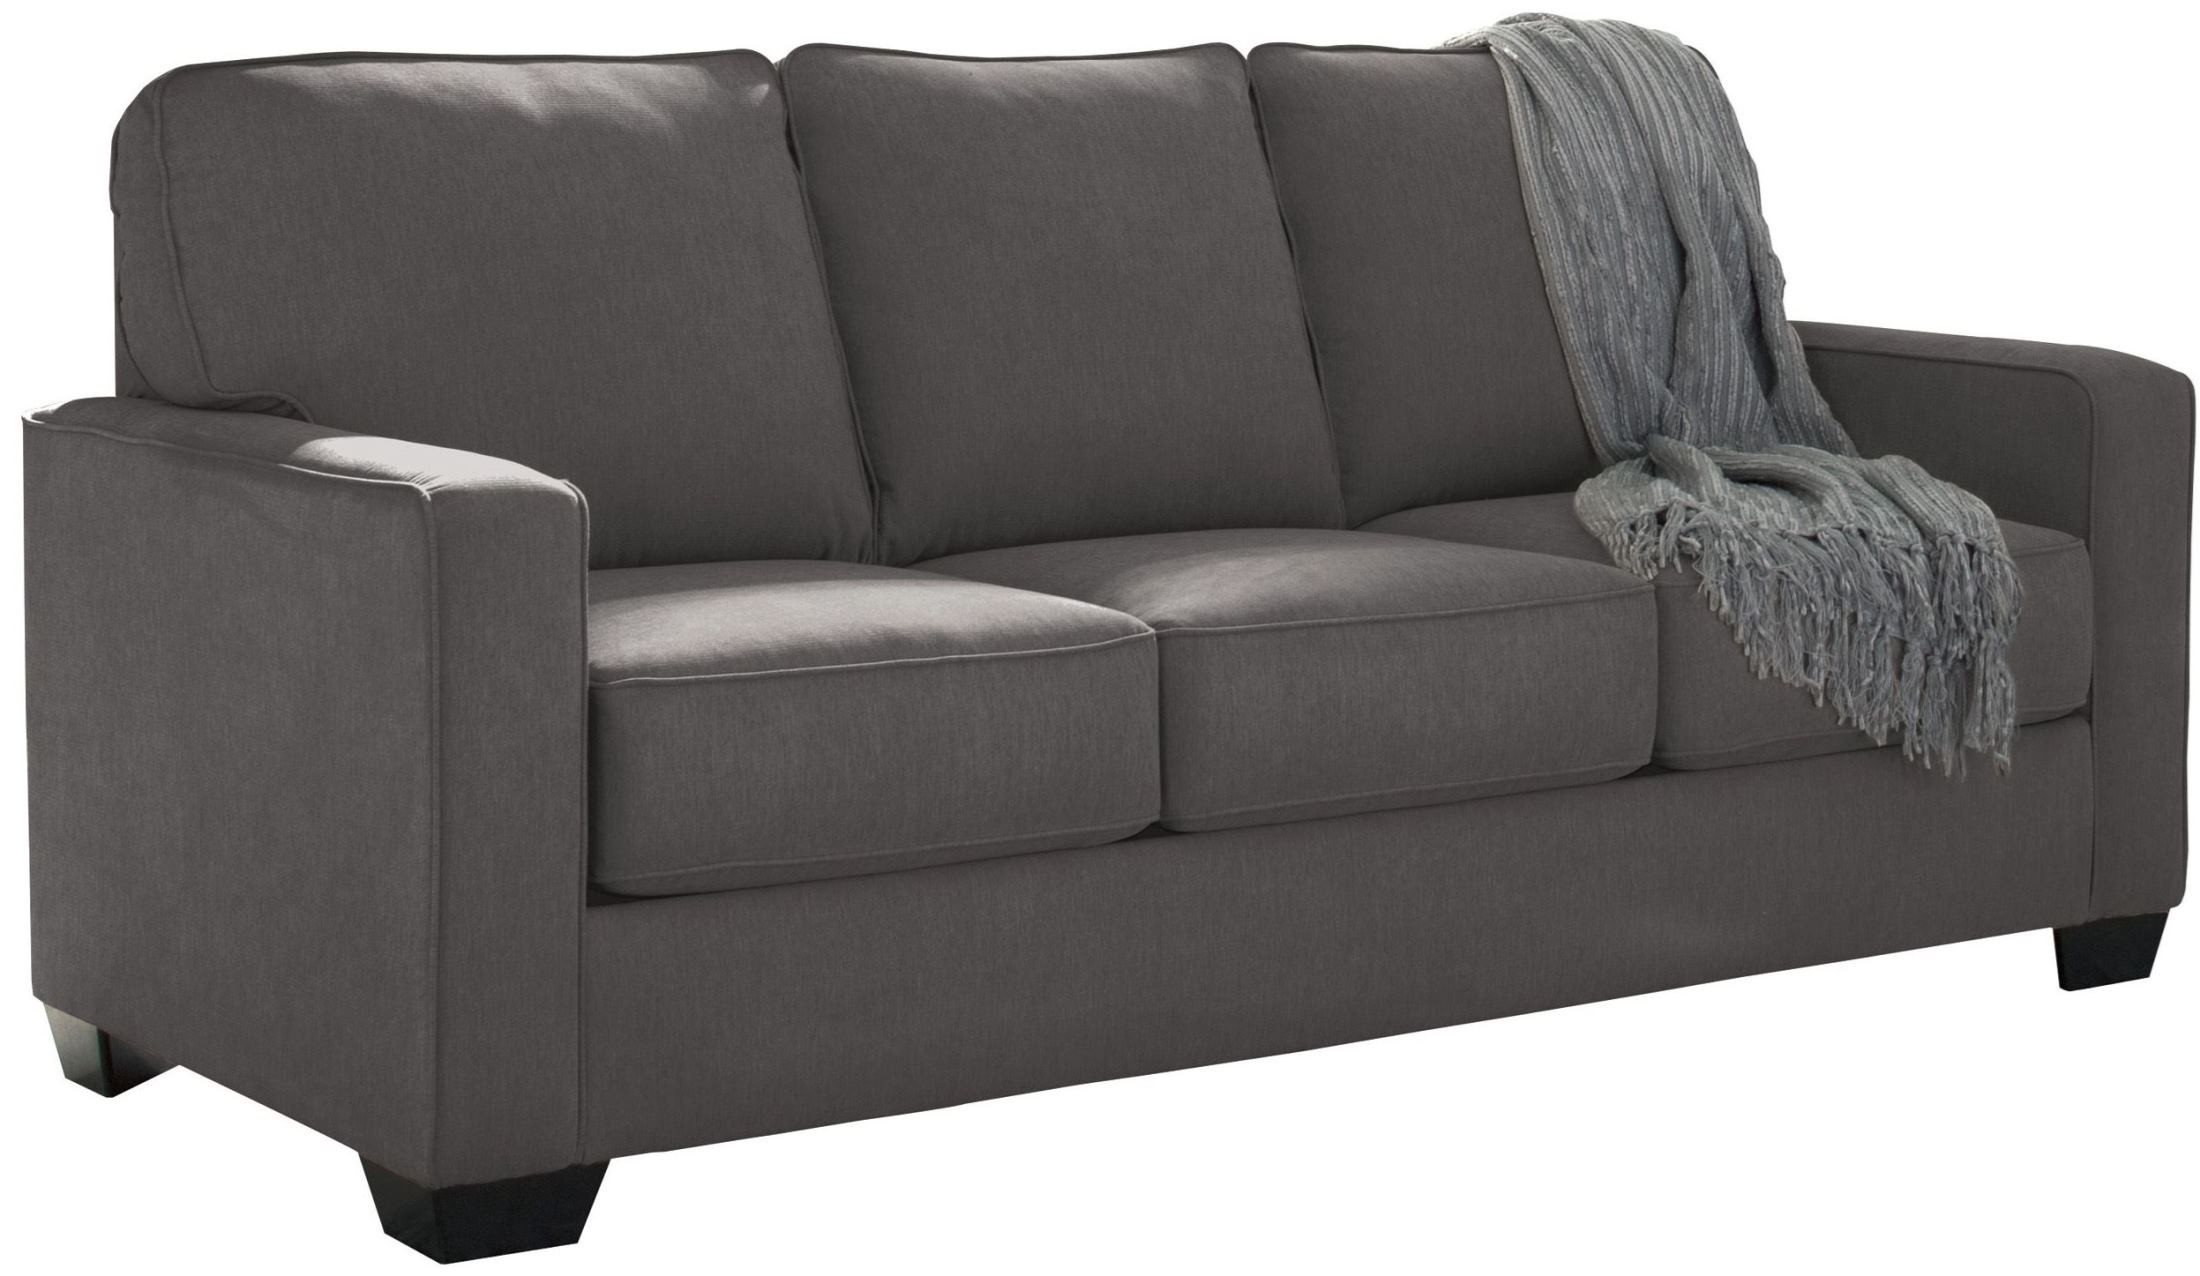 Zeb Charcoal Full Sofa Sleeper 3590136 Ashley : 35901 36 sw from colemanfurniture.com size 2200 x 1276 jpeg 286kB